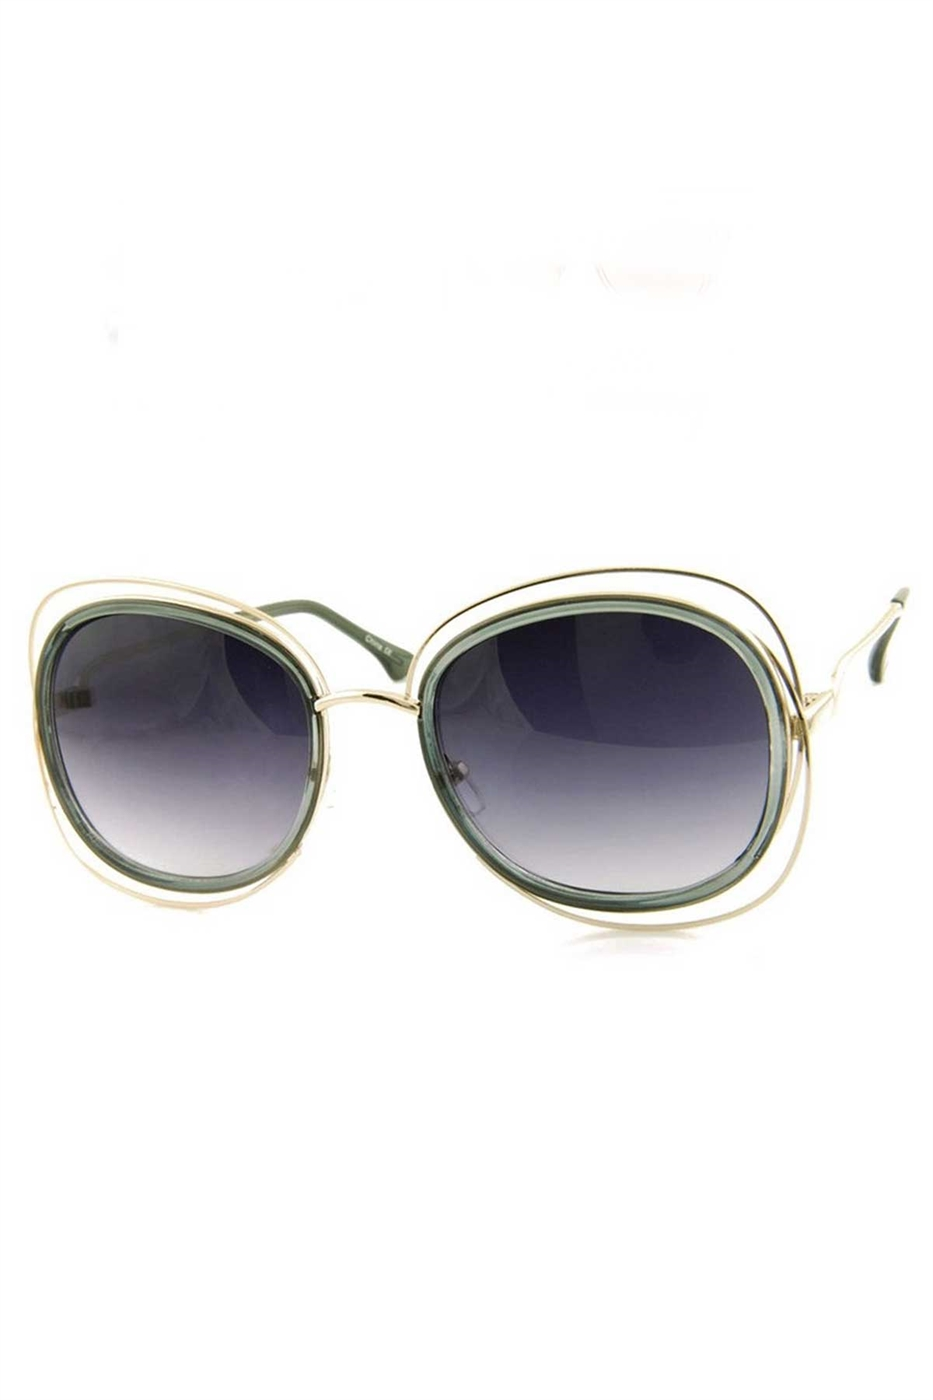 BAR FRAME SUNGLASSES - orangeshine.com